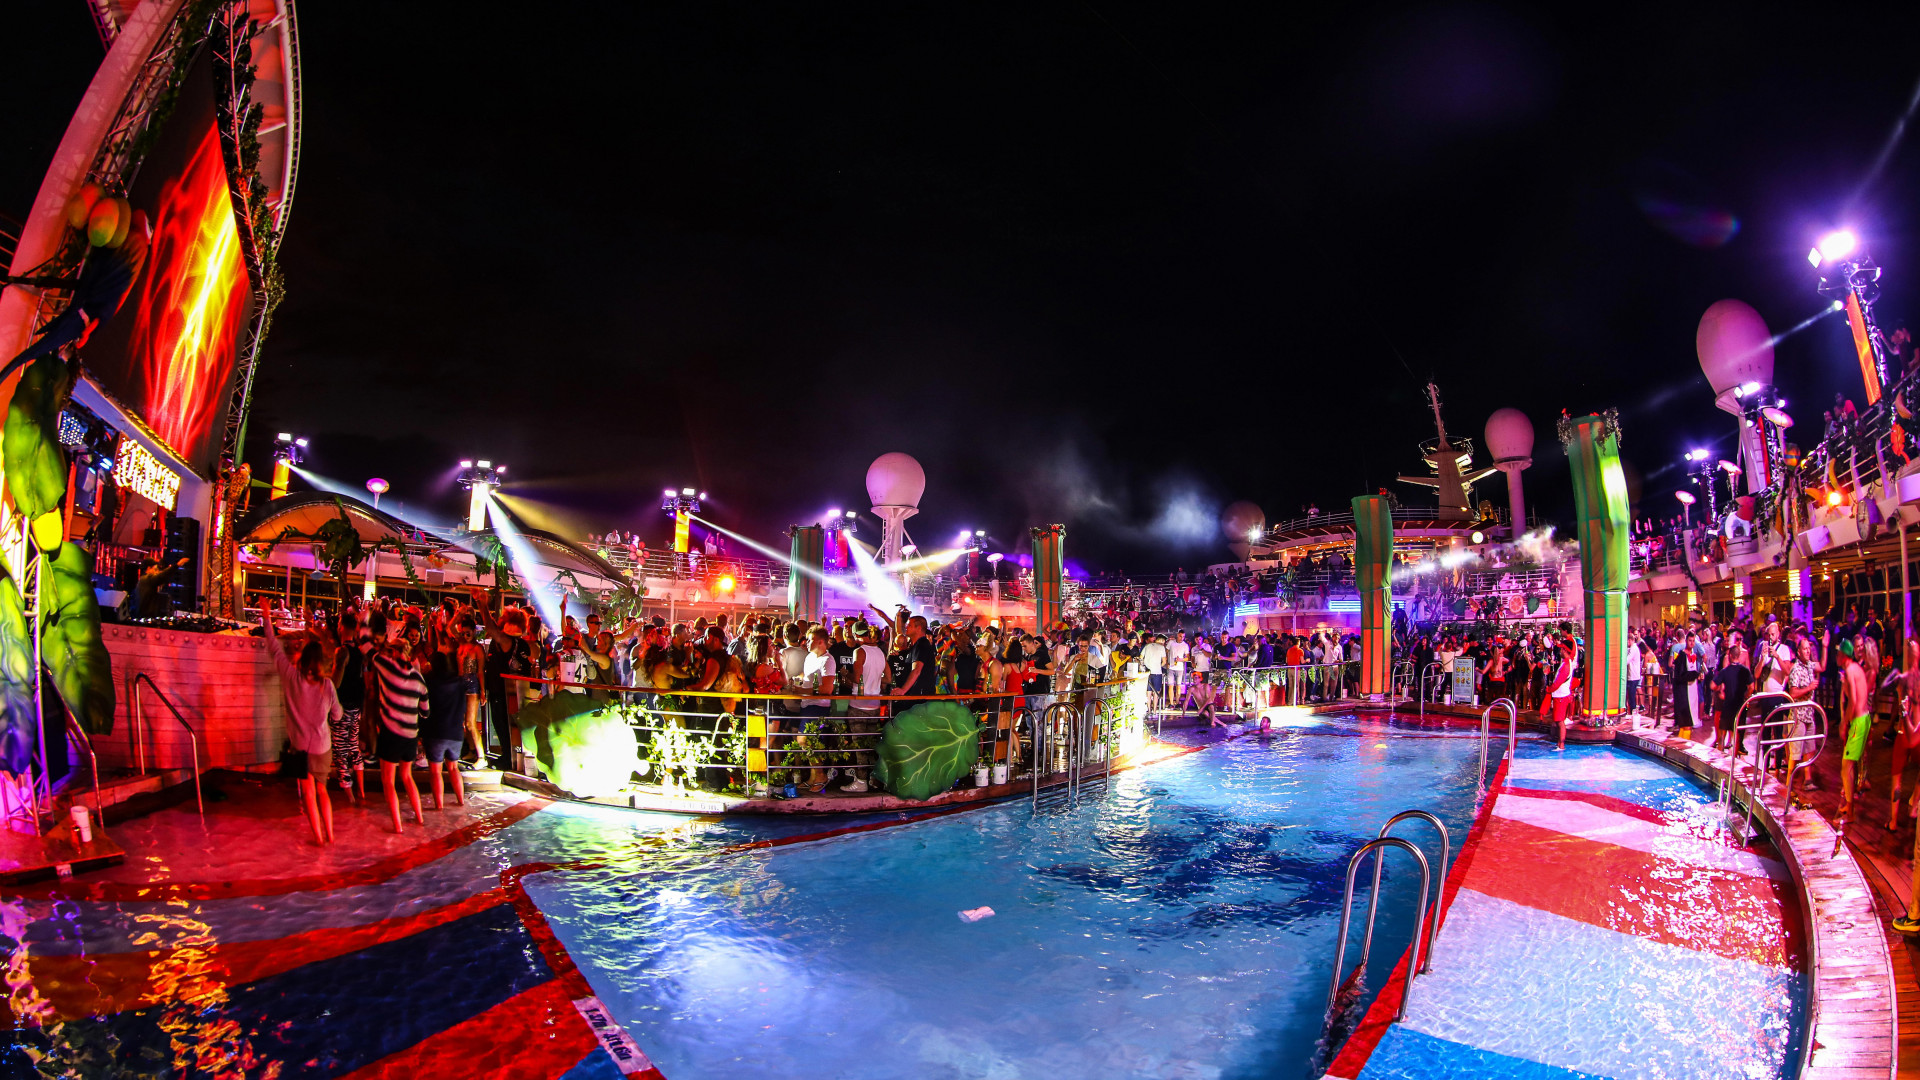 The poolside outdoor stage at Ark festival